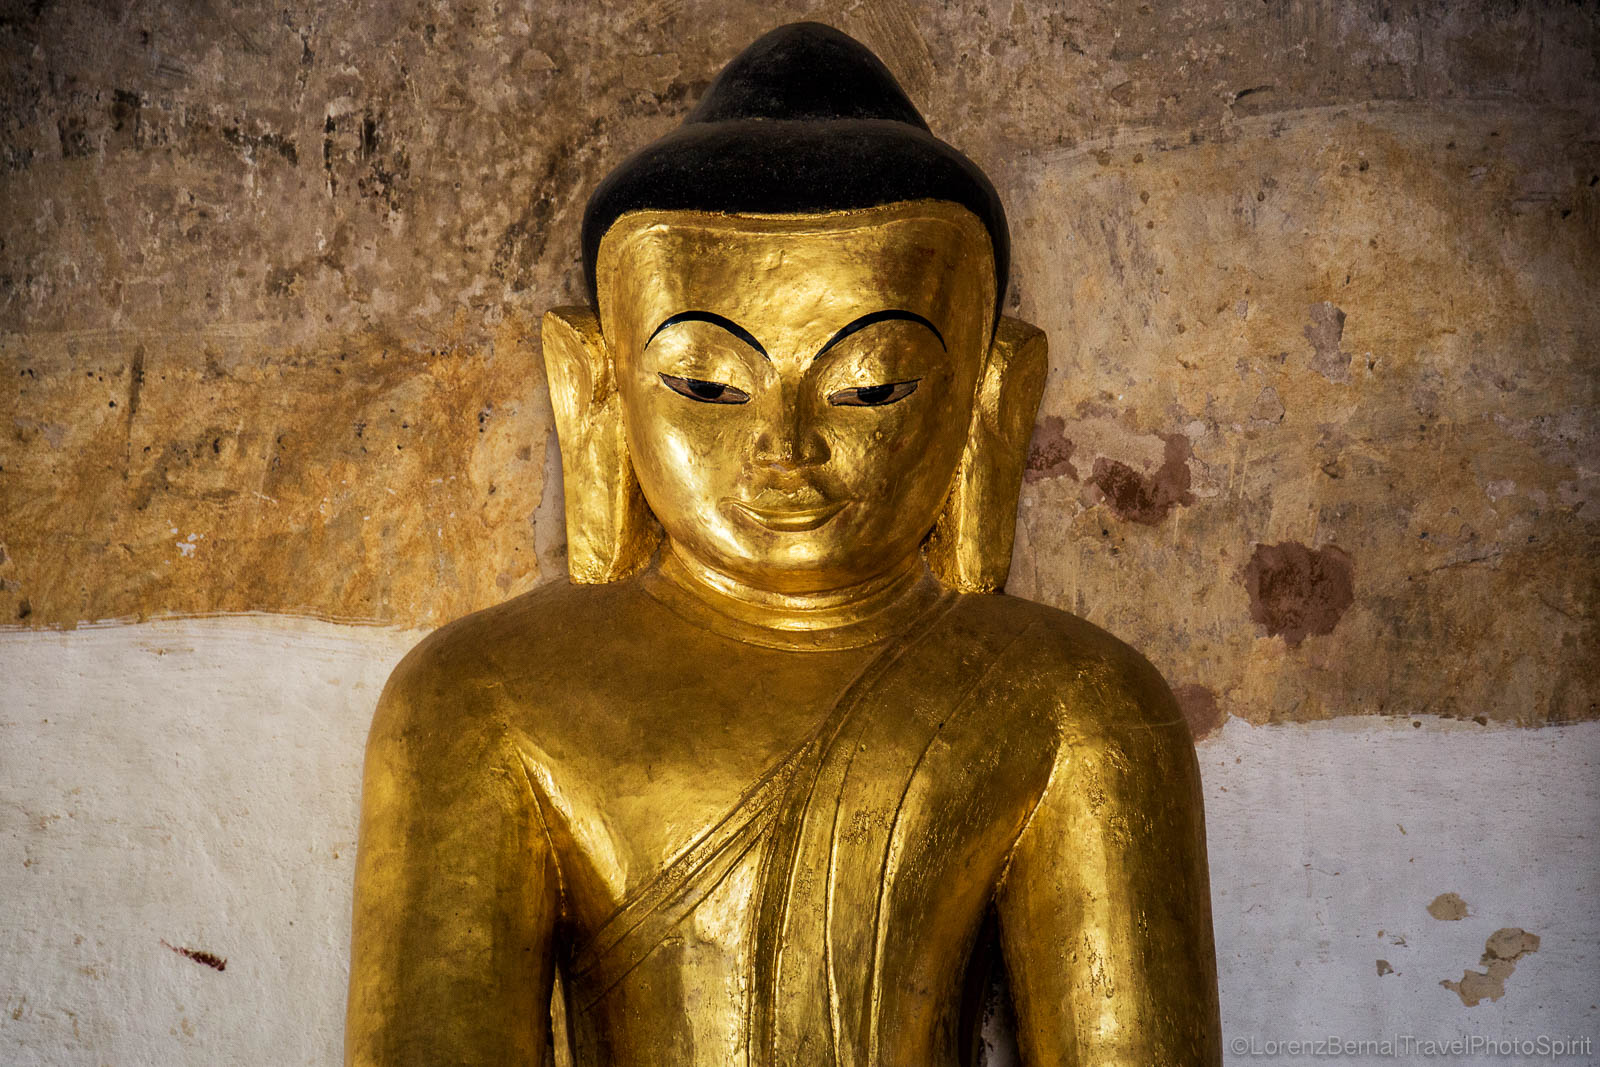 Golden statue of Buddha in a temple of Bagan.